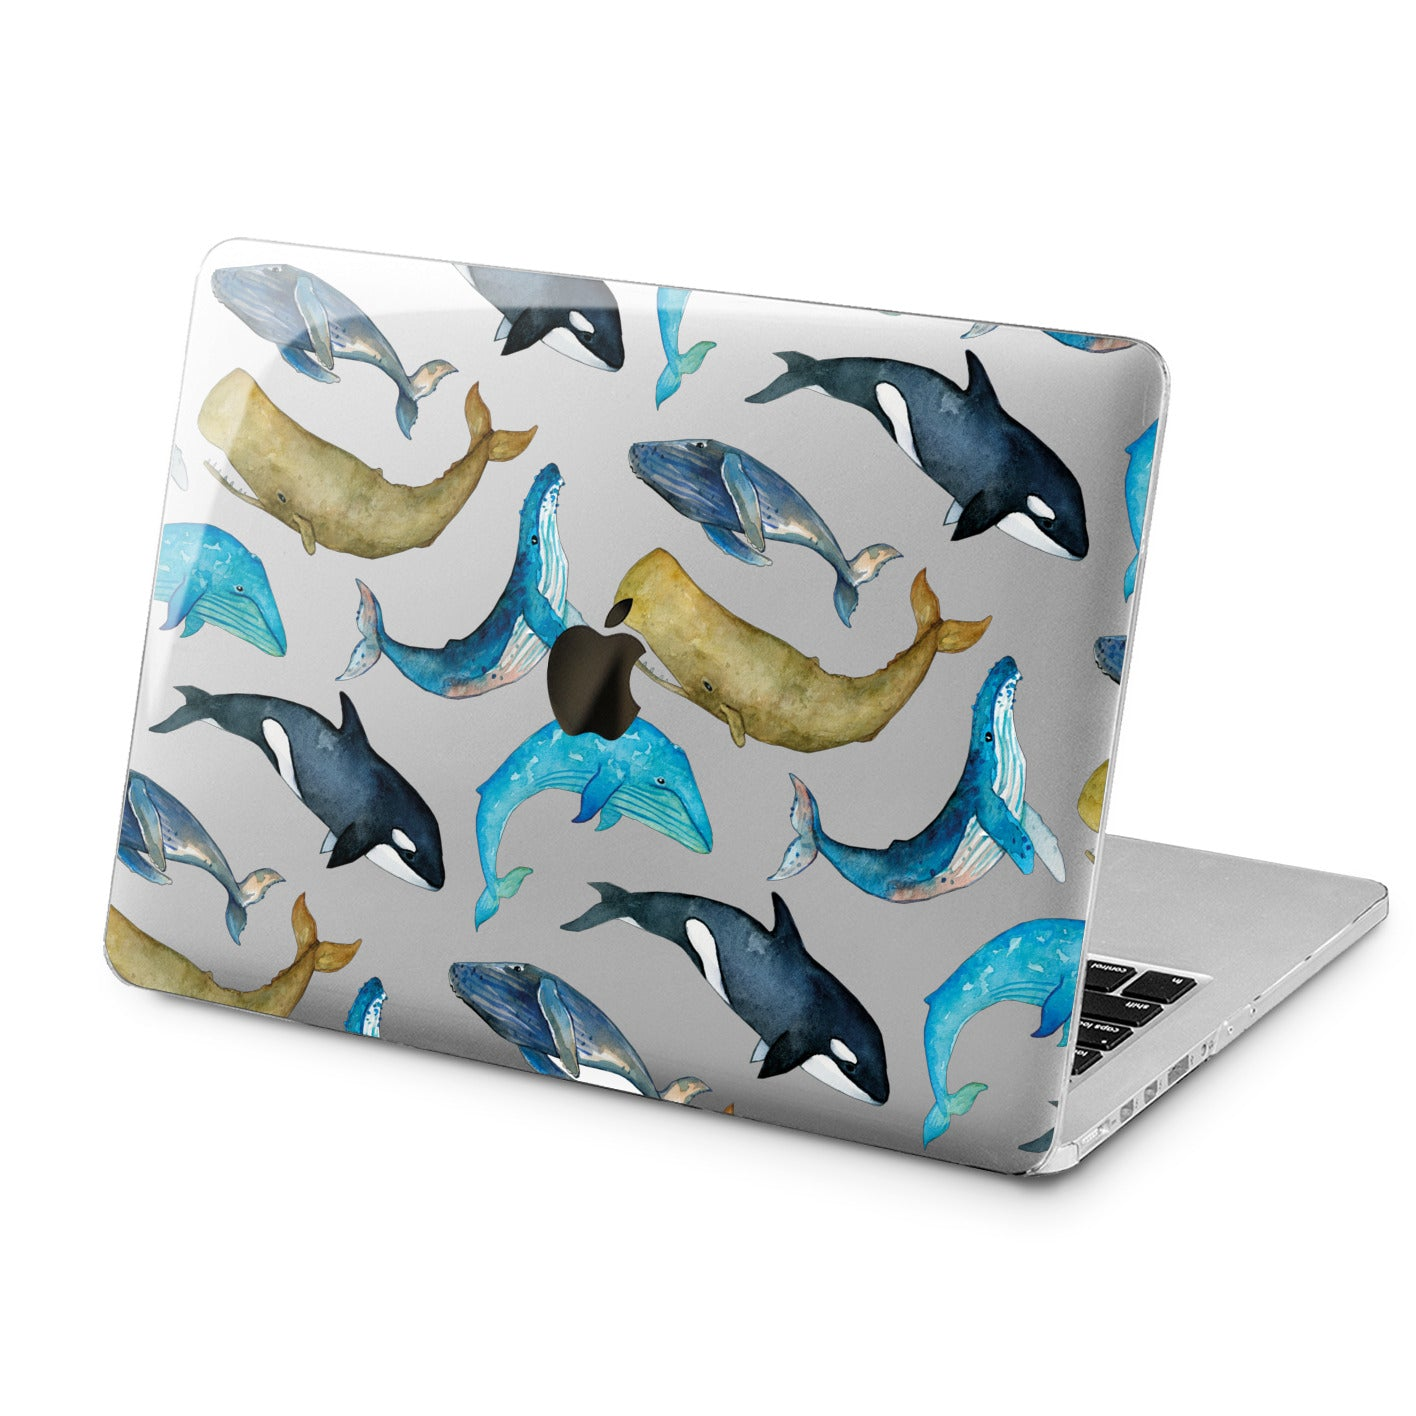 Lex Altern Lex Altern Whale Pattern Case for your Laptop Apple Macbook.